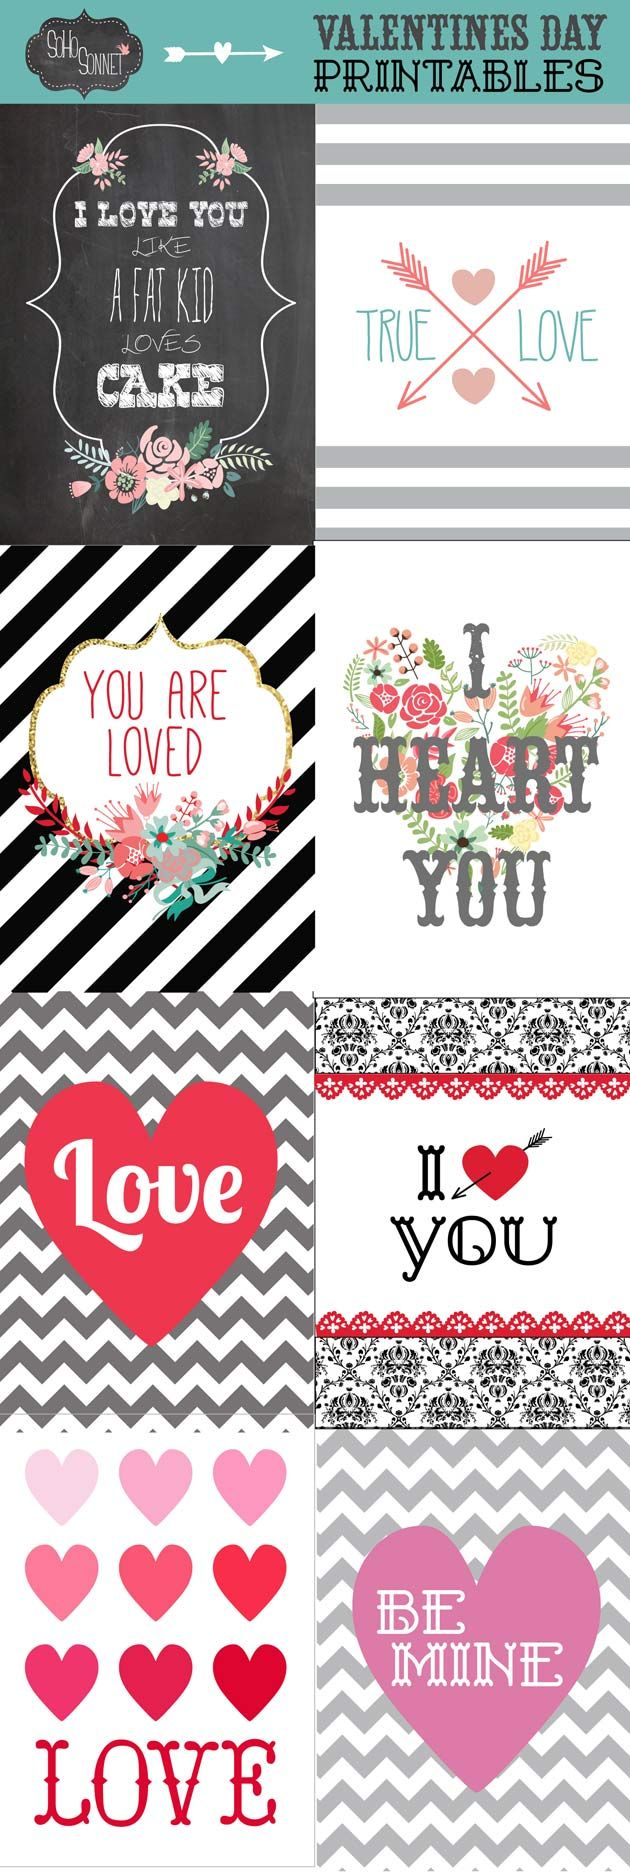 Valentines Day Printables Free - SohoSonnet Creative Living